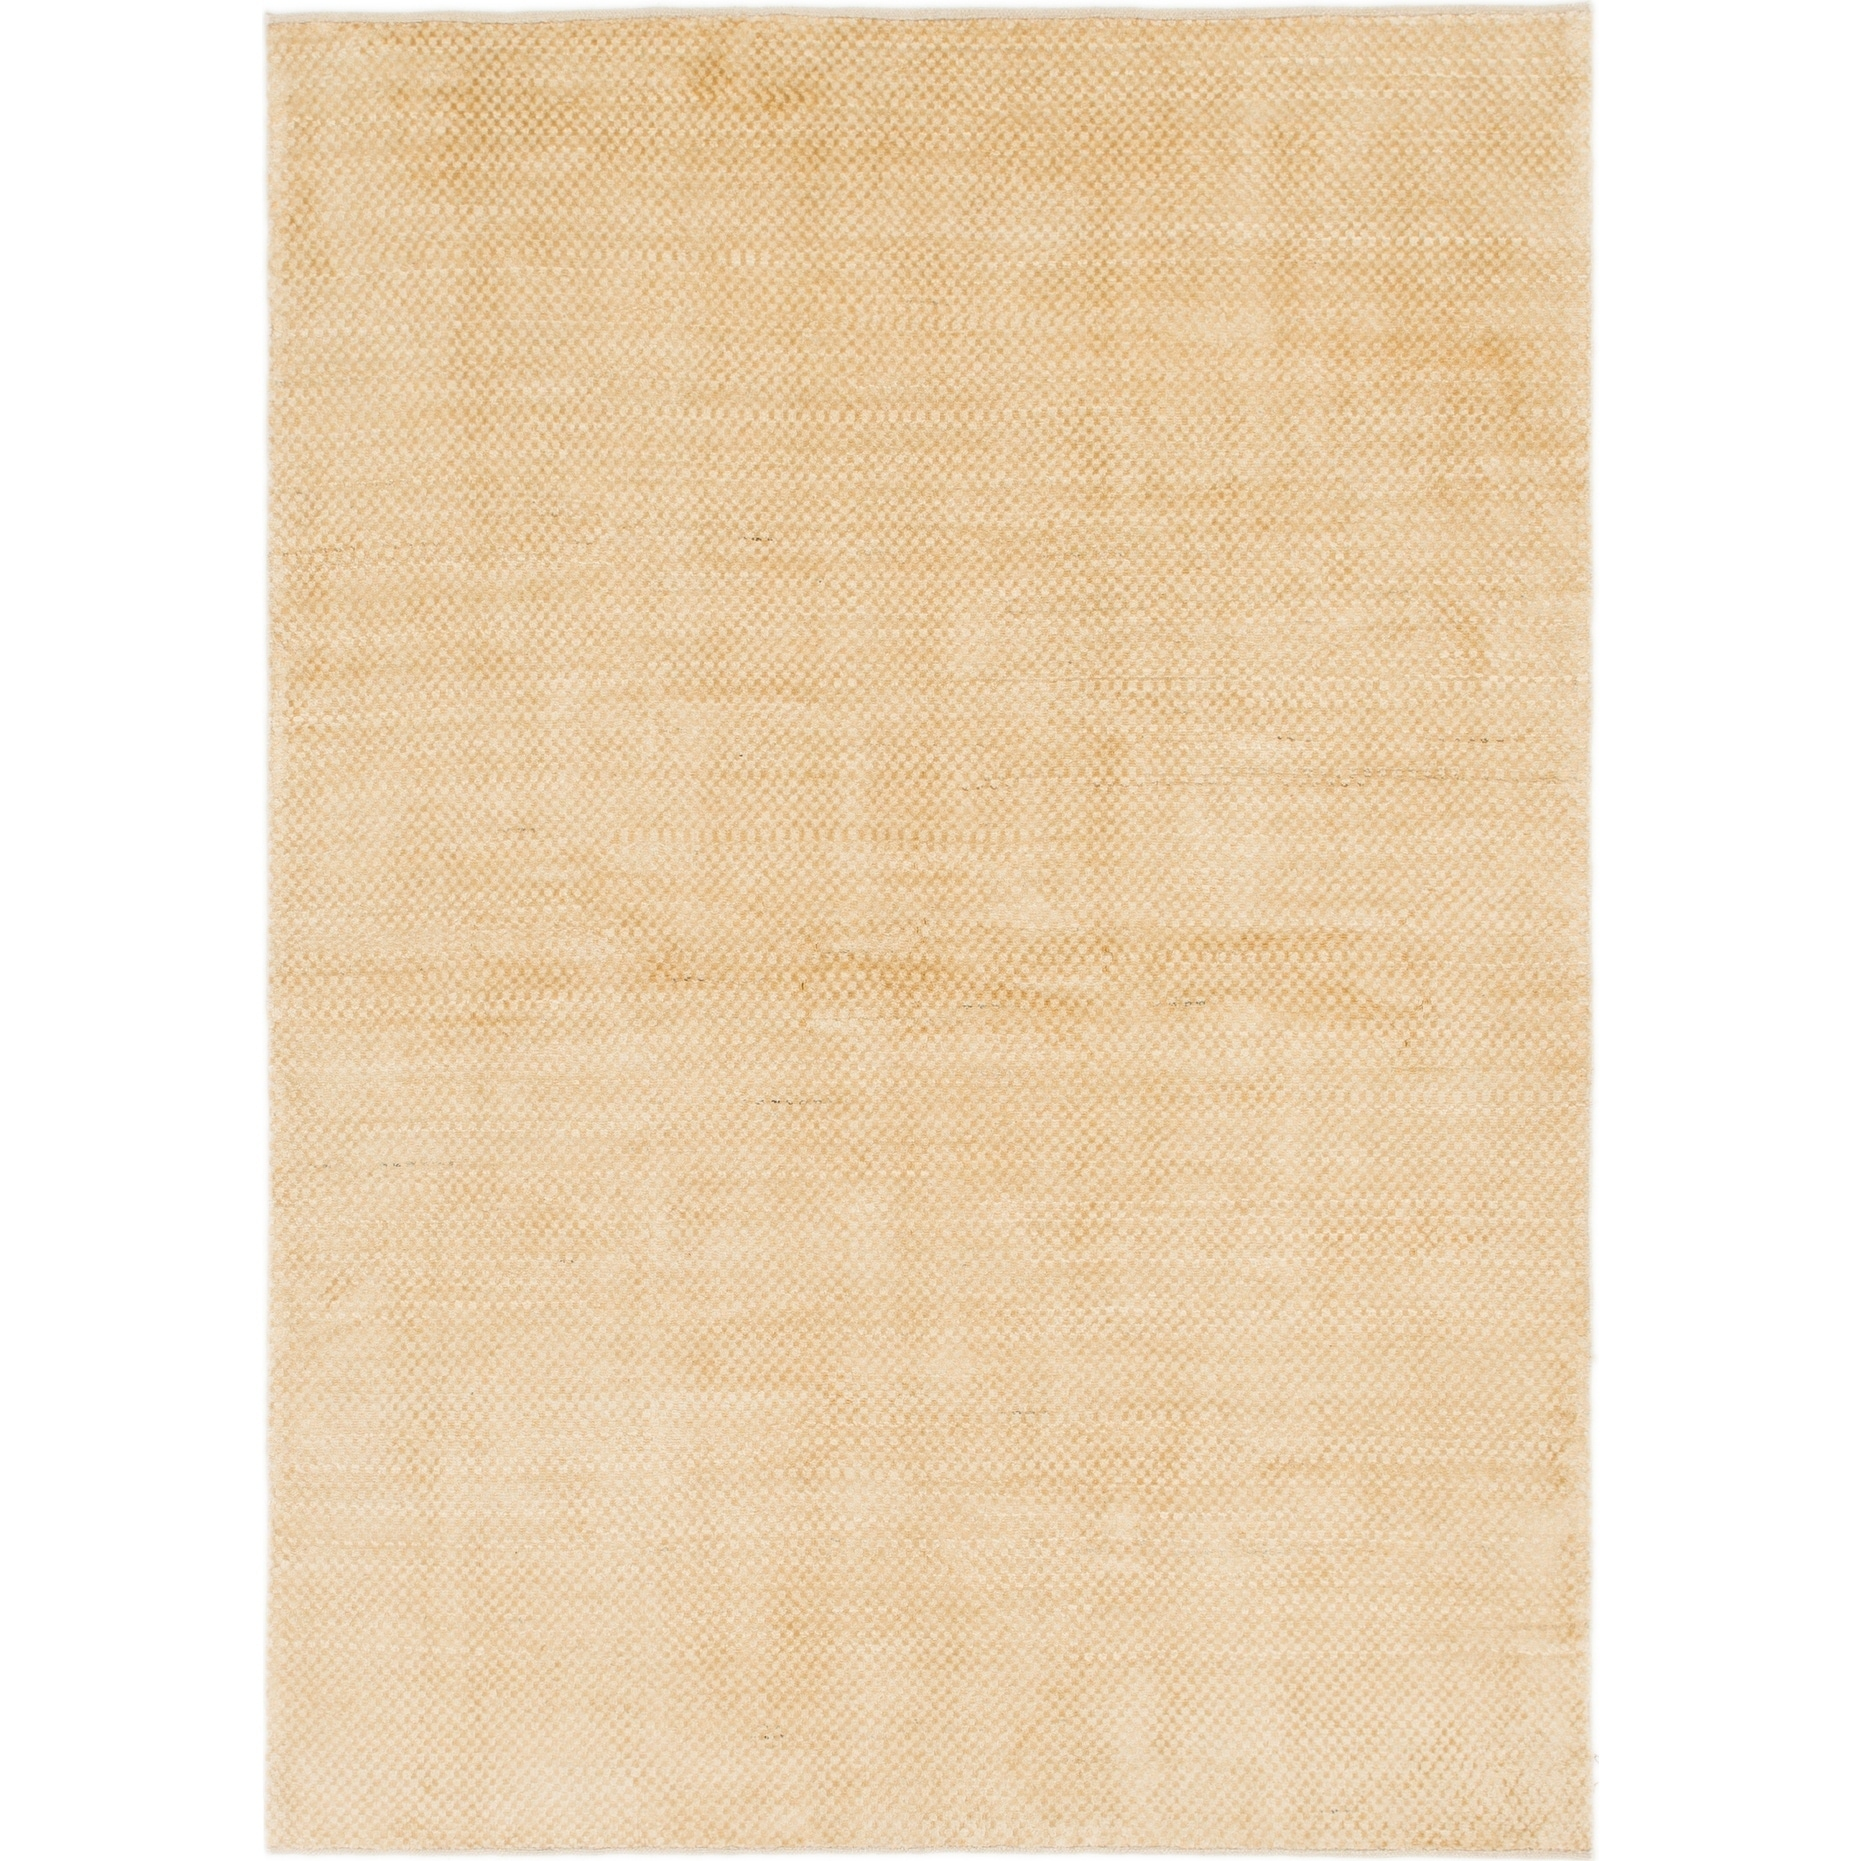 Hand Knotted Kashkuli Gabbeh Wool Area Rug - 5 7 x 7 9 (Gold - 5 7 x 7 9)